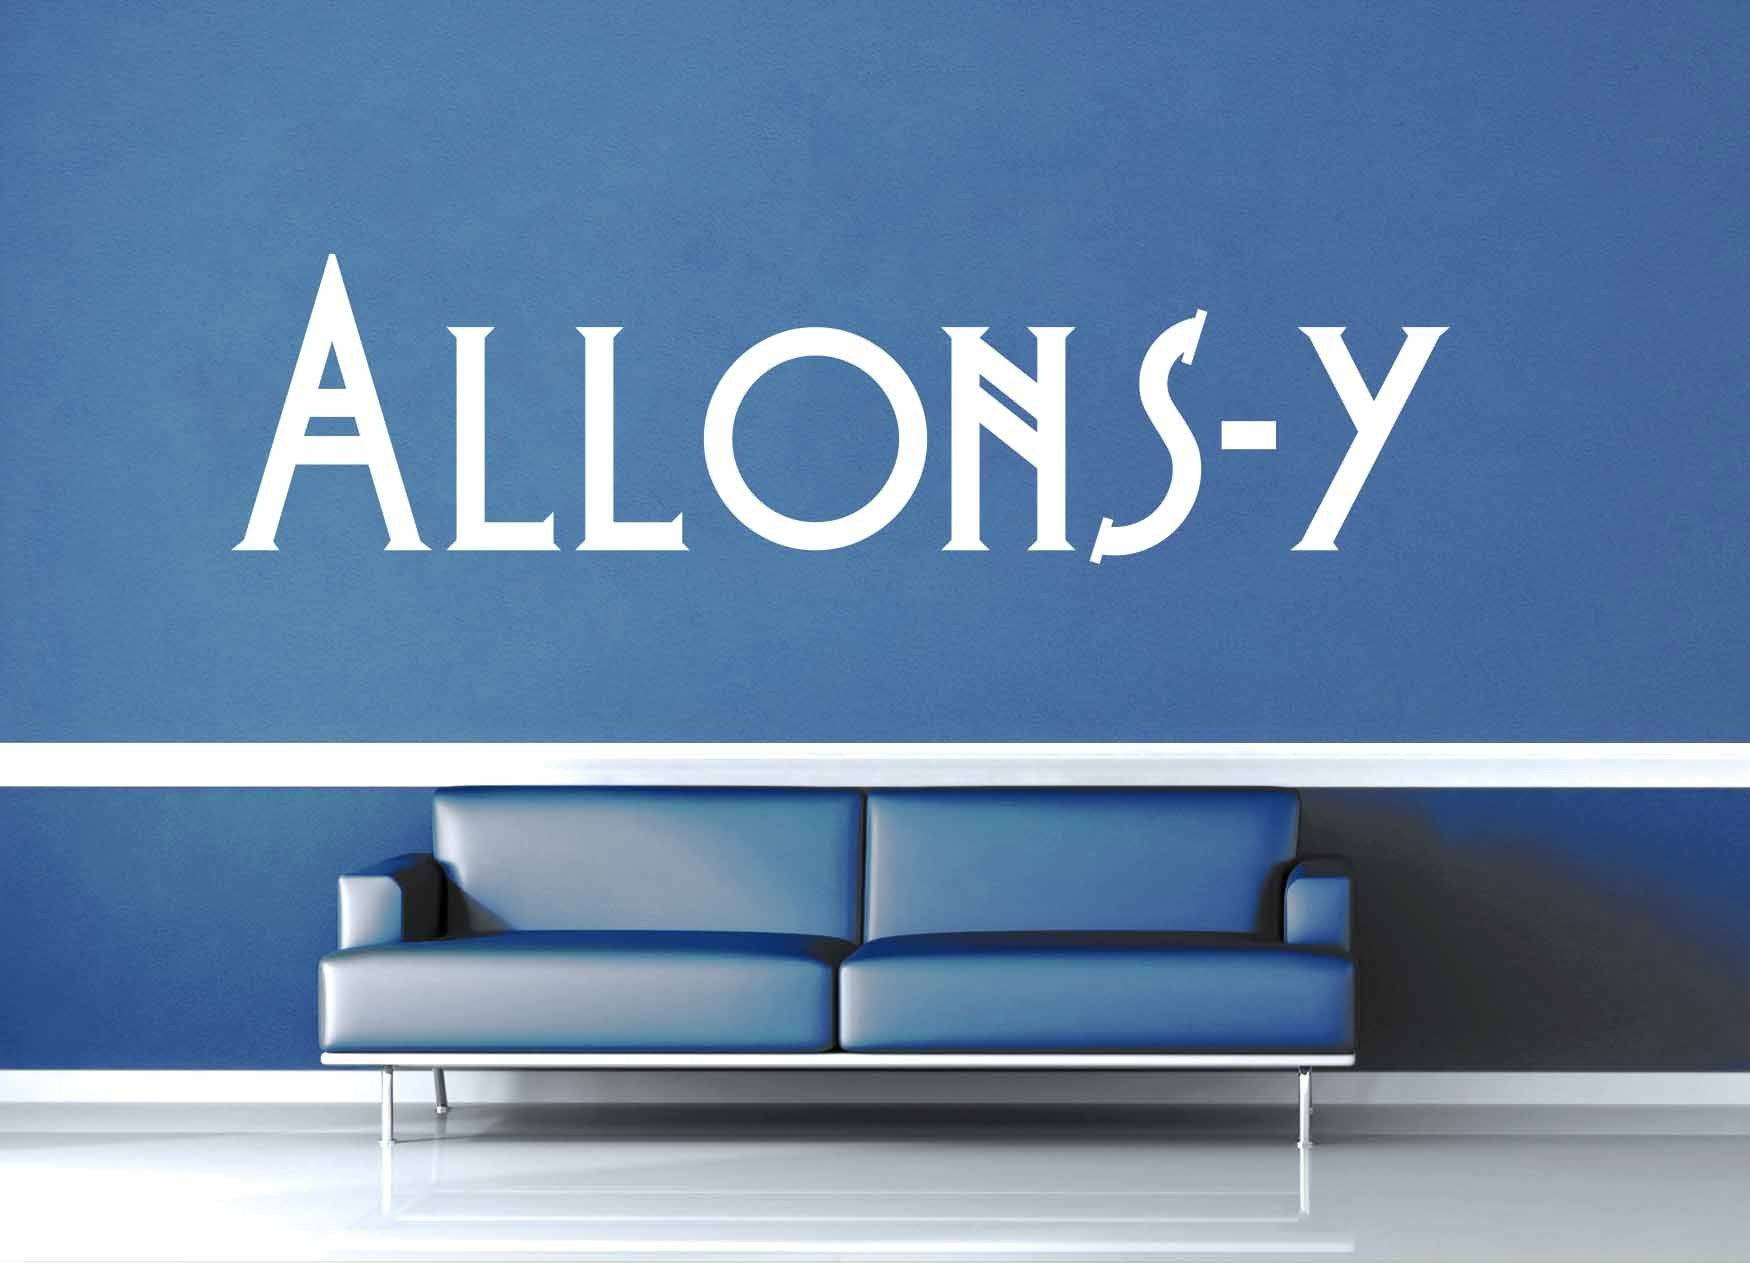 Allons-y - Doctor Who Quote - Wall Decal